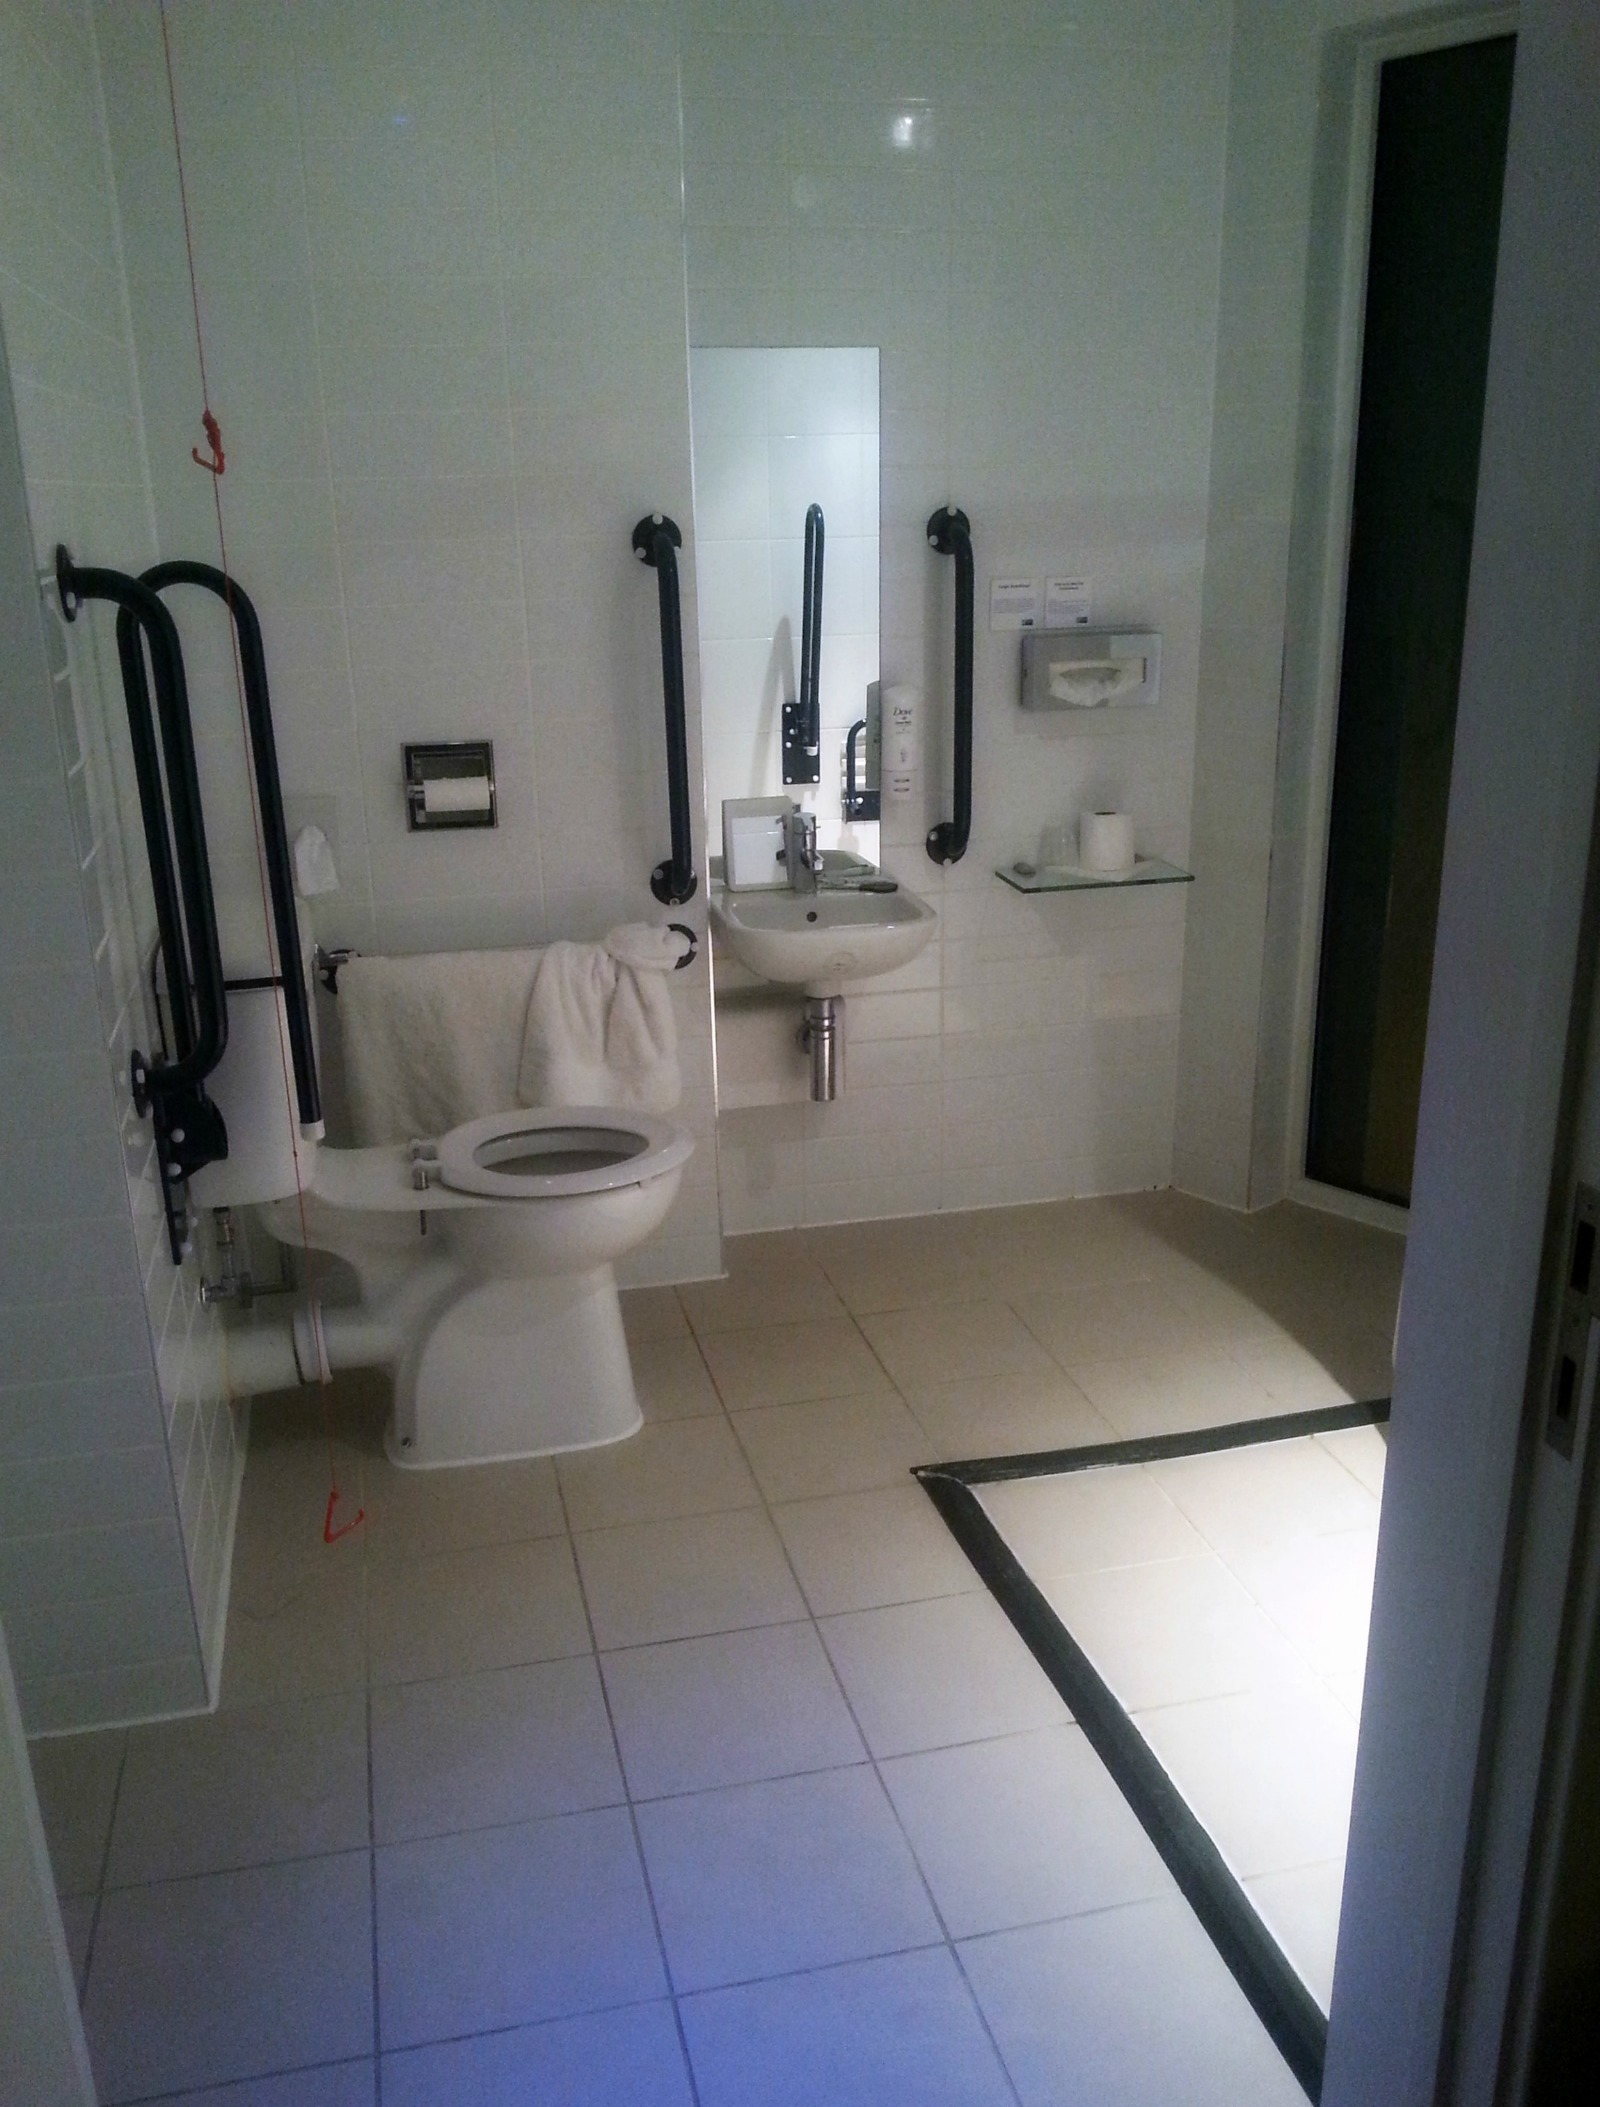 Holiday Inn Express Manchester City Centre accessible room